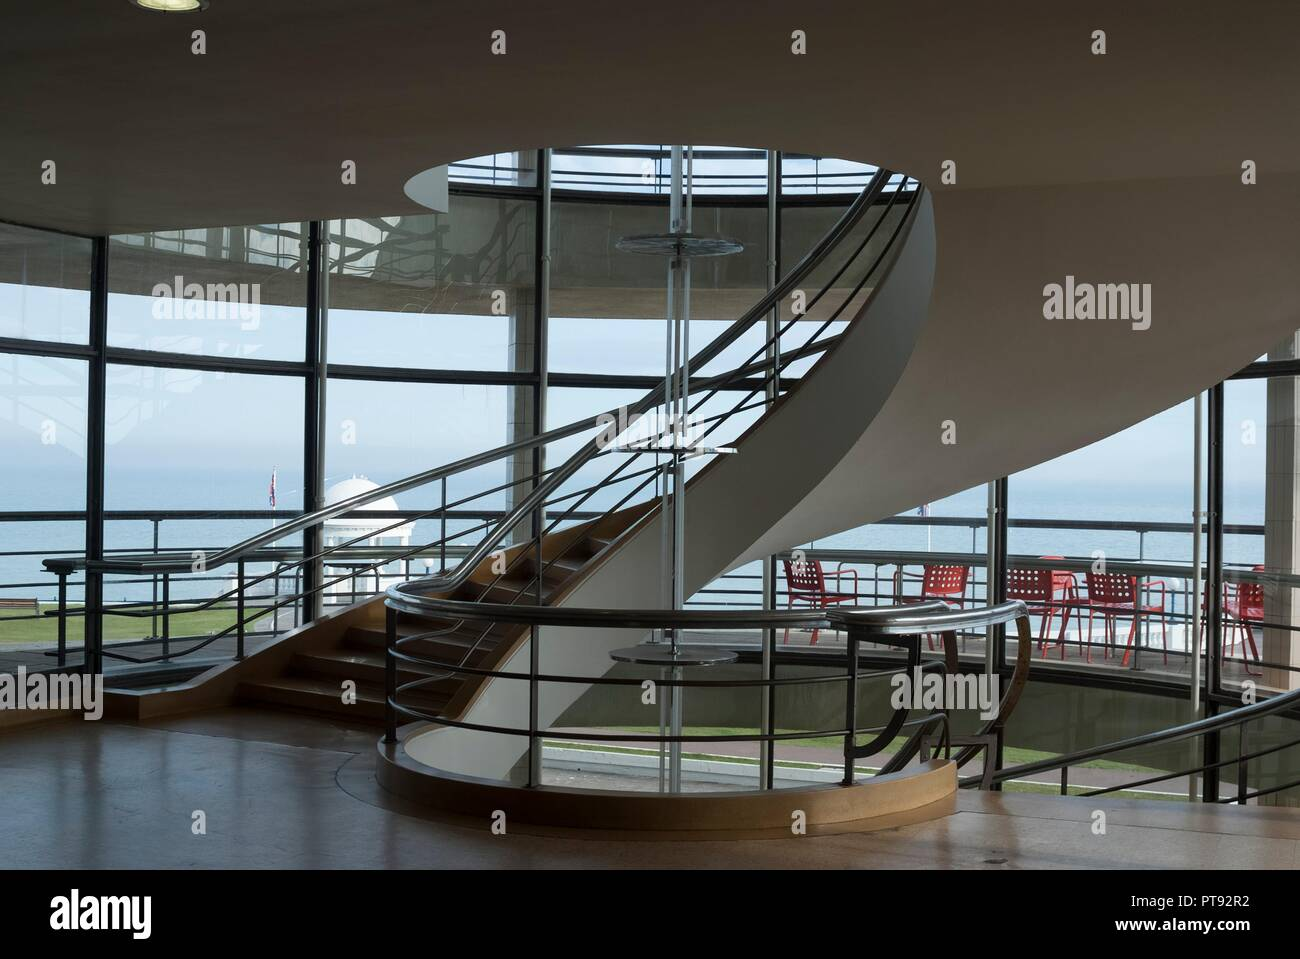 Interior of the De la Warr Pavilion, an art deco, modernist Grade I listed building built in 1935 by Mendelsohn and Chermayeff, now housing one of the biggest art galleries on the south coast, Bexhill, East Sussex, England. - Stock Image